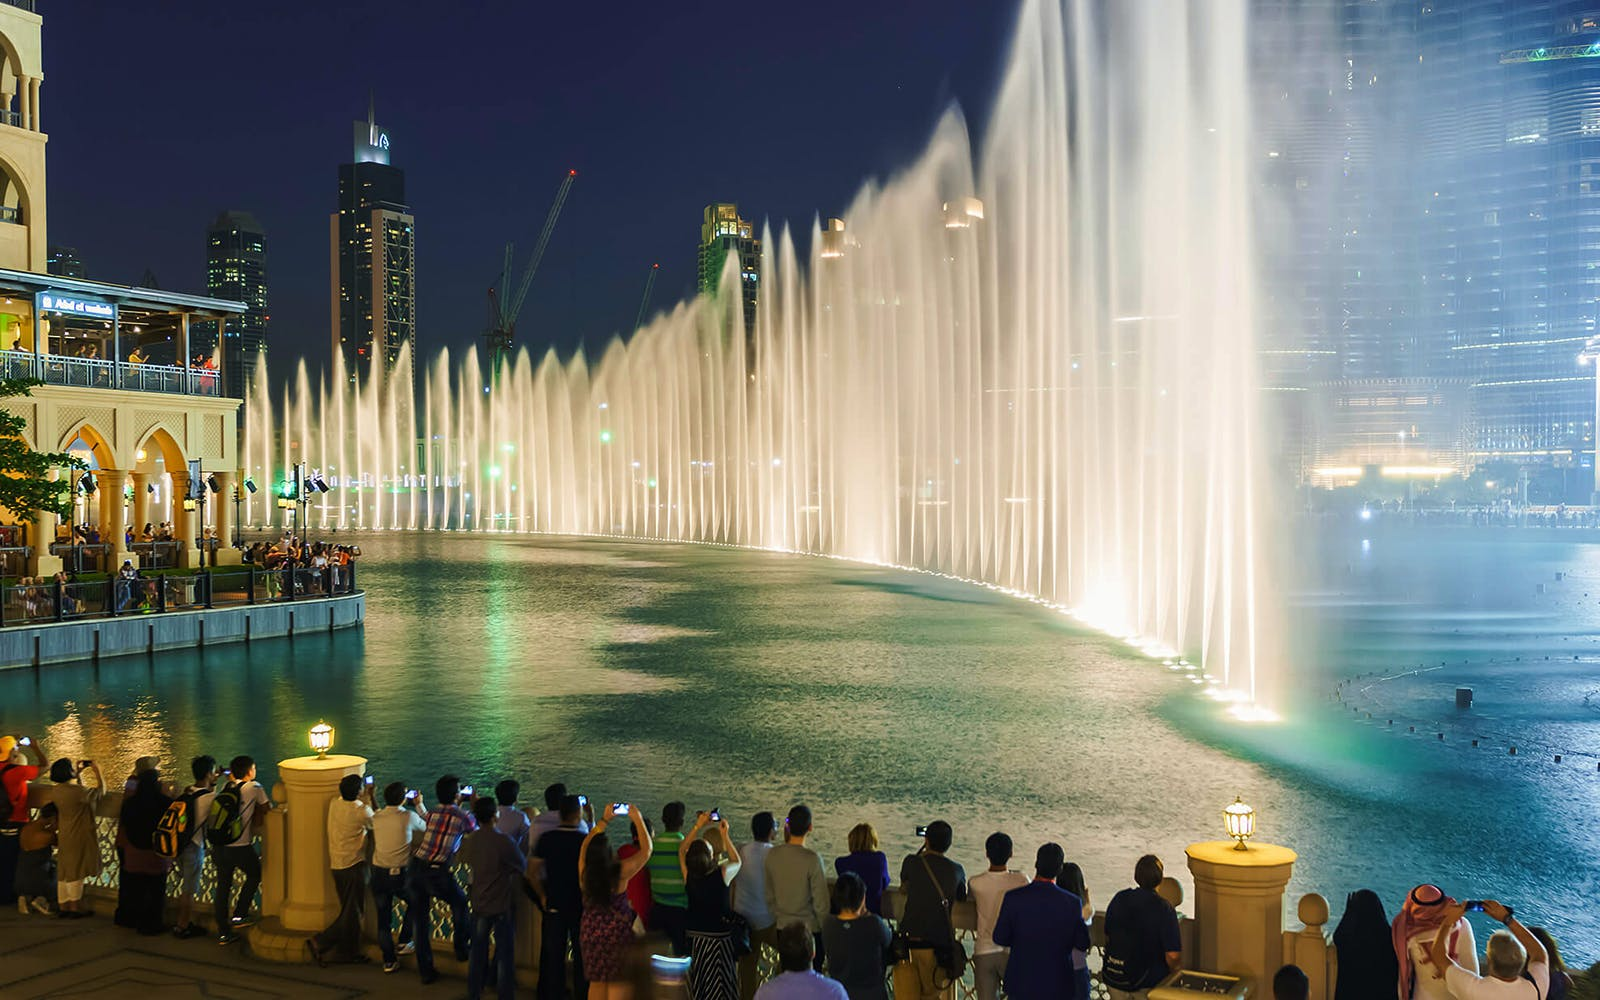 burj khalifa + dubai fountain boardwalk-2